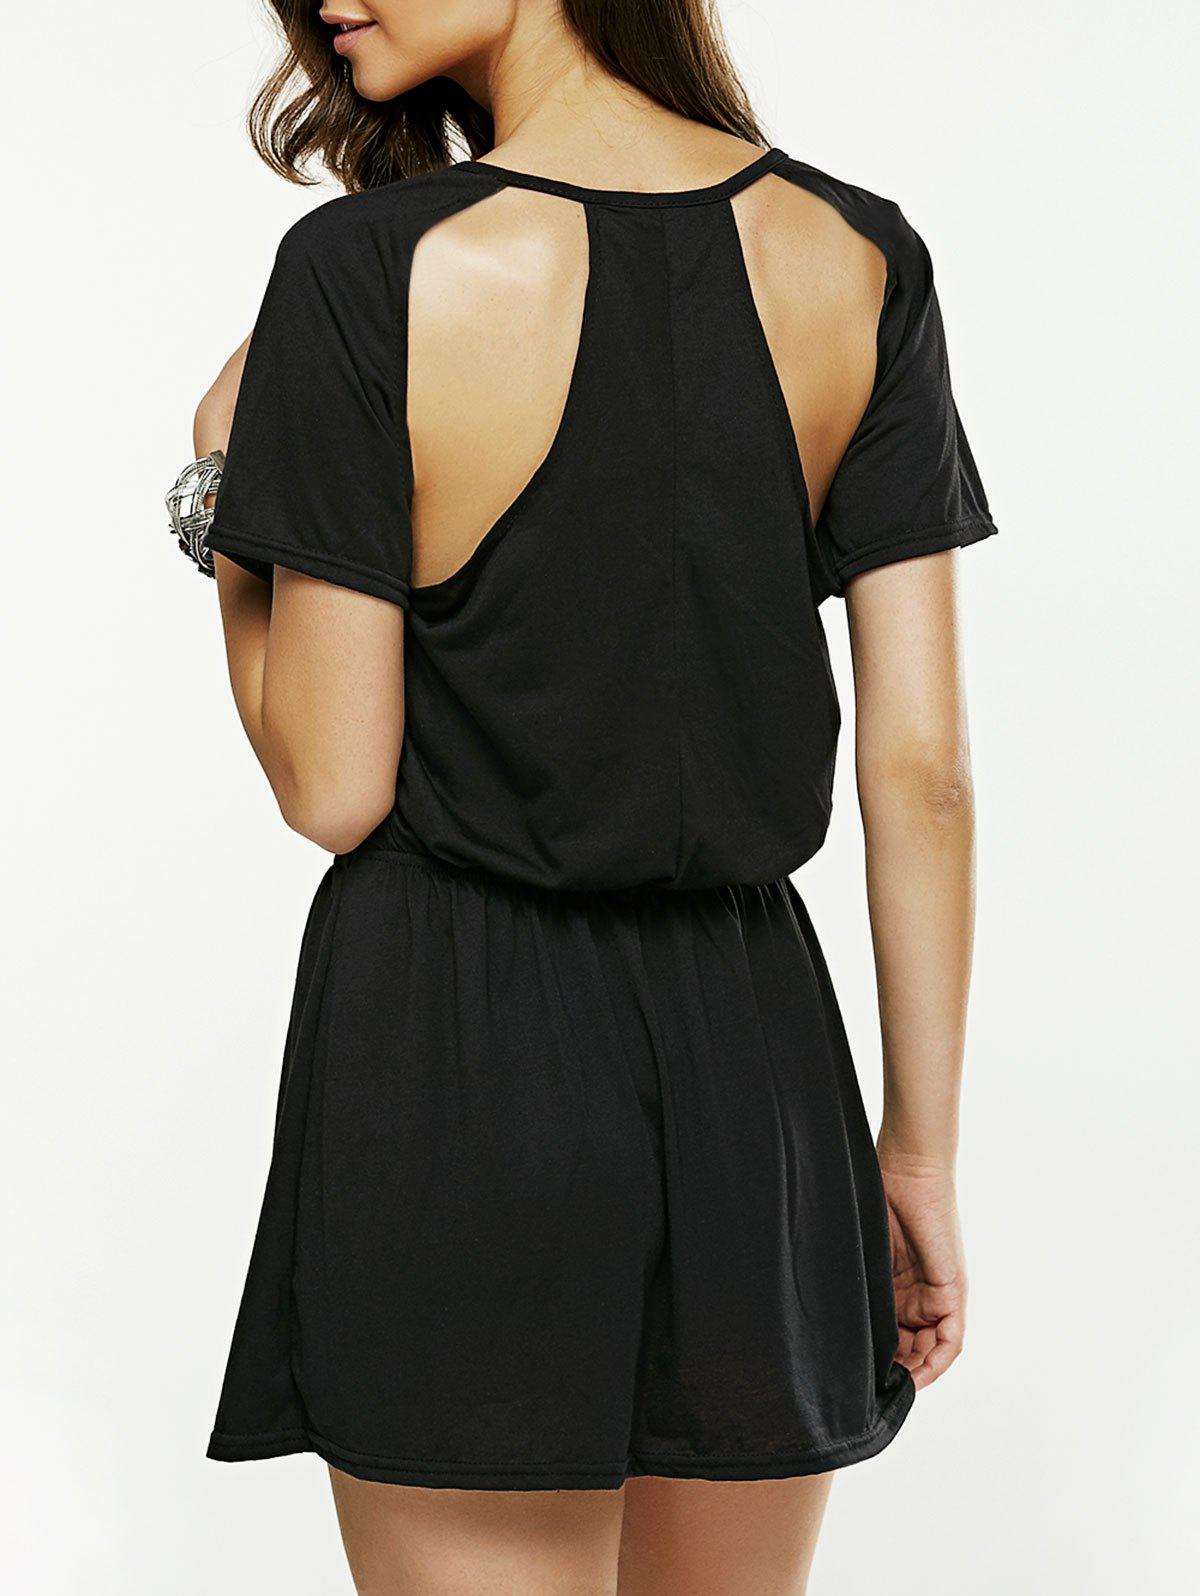 Hollow Out Backless Mini Dress - BLACK S